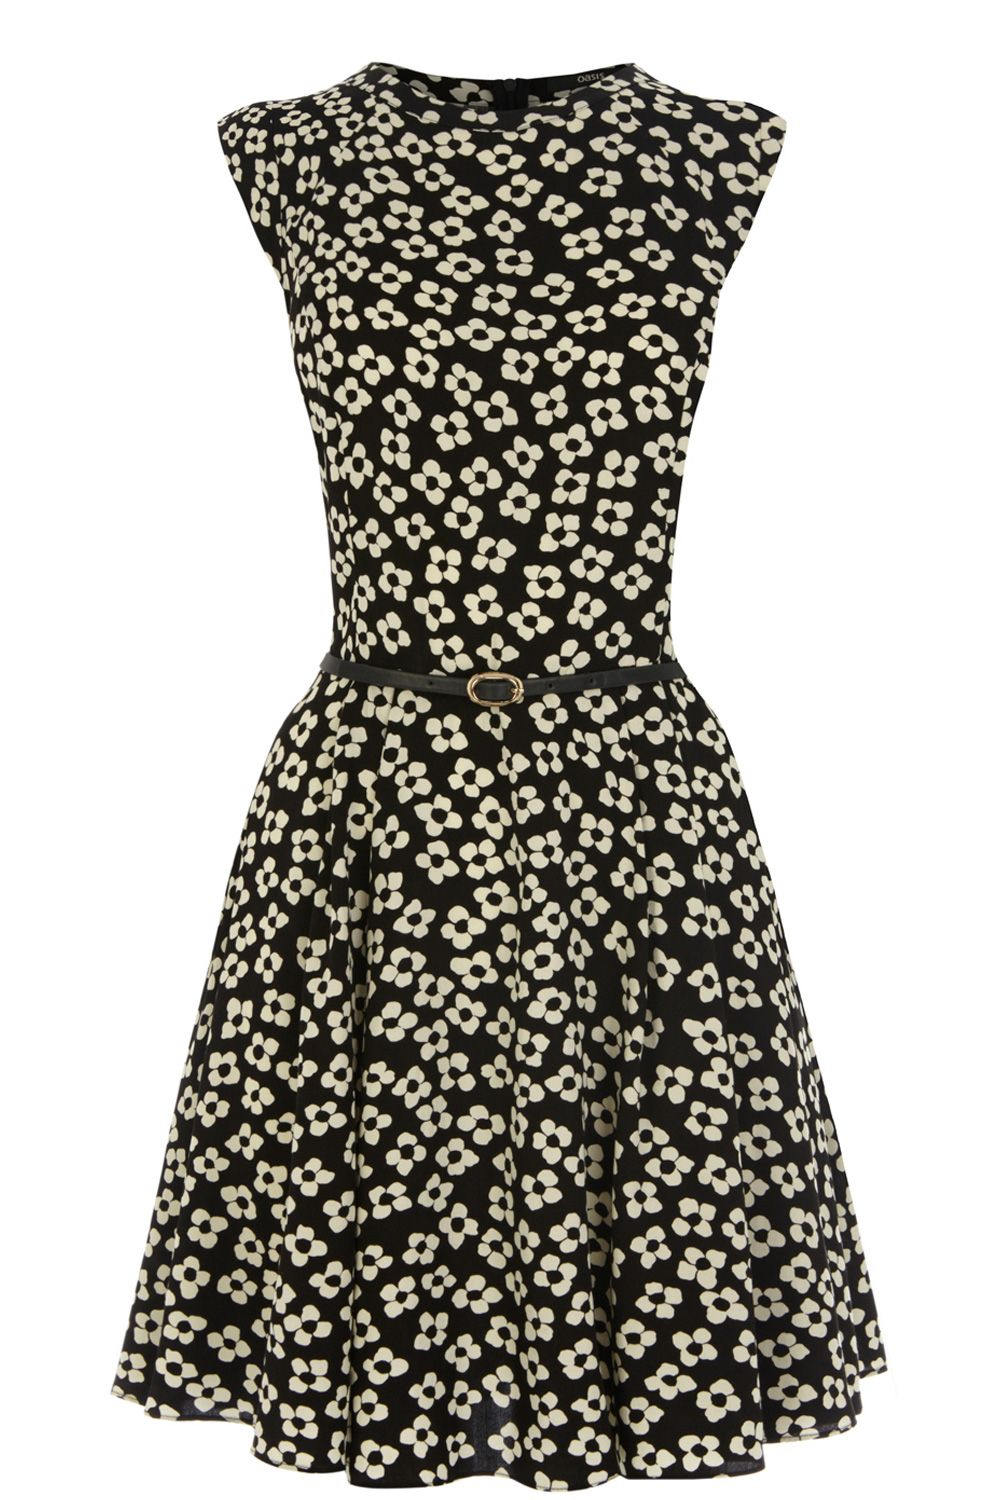 Daisy viscose skater dress